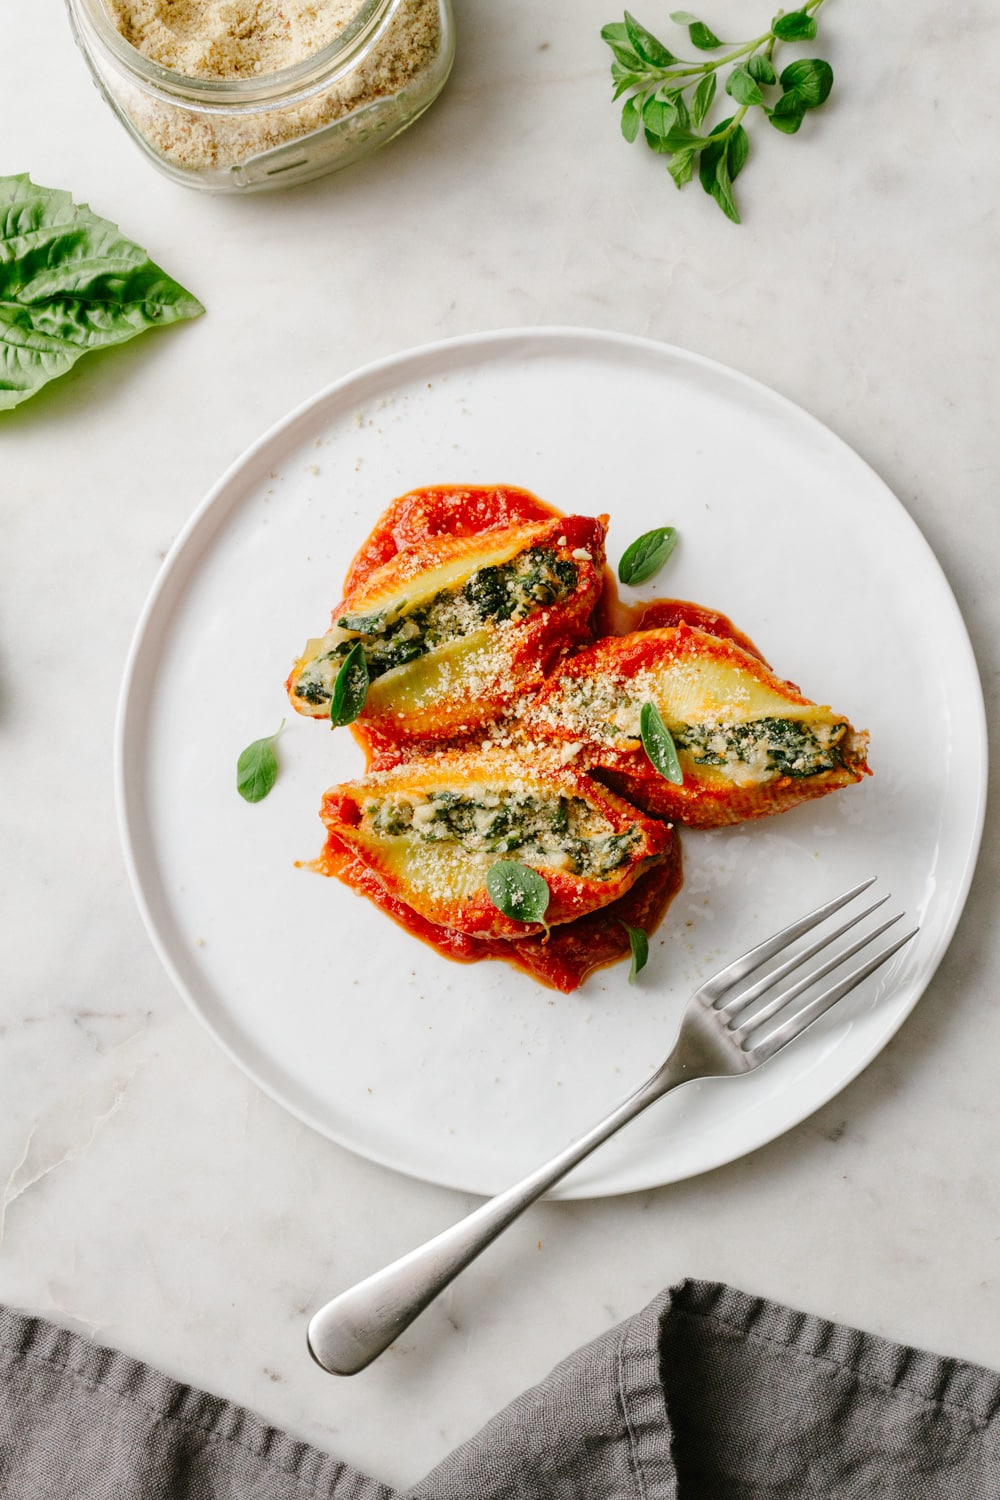 vegan stuffed shells with spinach and ricotta on a white plate with fork